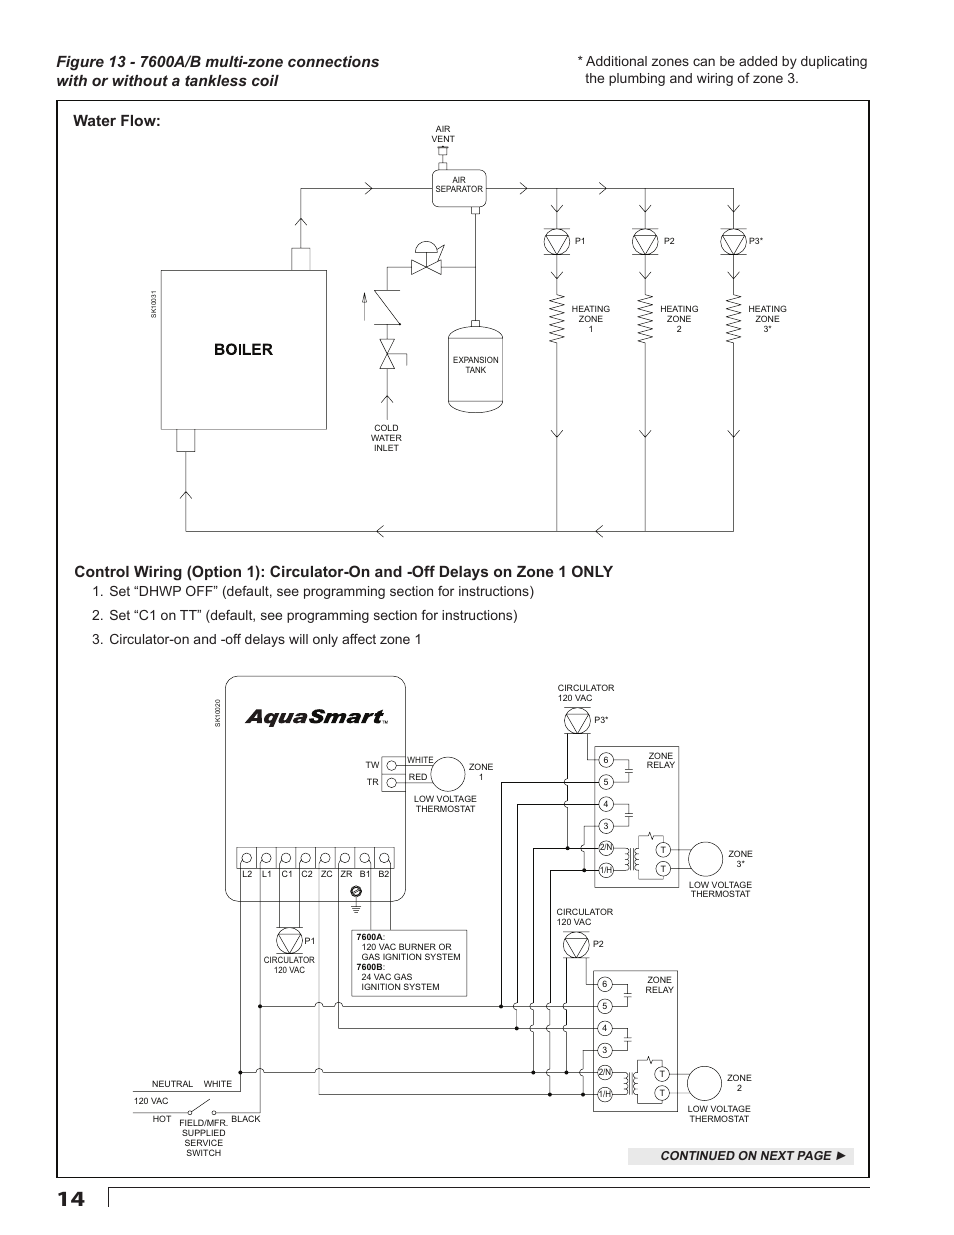 7600a Beckett Wiring Diagram Great Installation Of For Oil Boiler 7600 Aquasmart Control User Manual Page 14 36 Rh Manualsdir Com Burner Pump